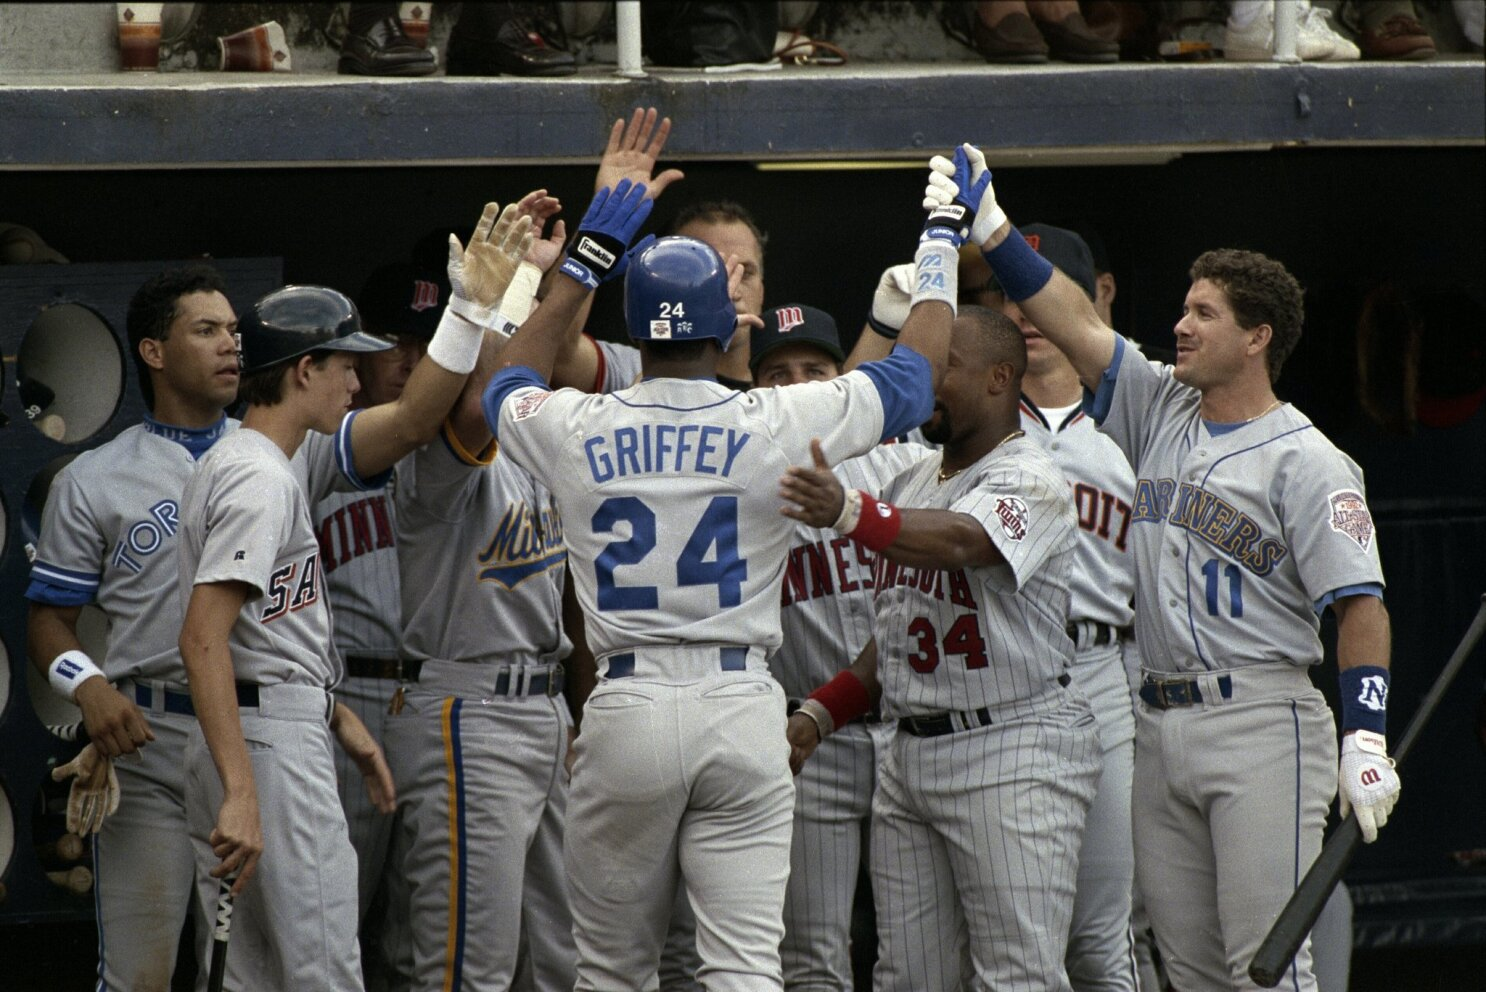 842c7dccc4 The Kid provides The Show: Griffey Jr. wows in San Diego - The San Diego  Union-Tribune